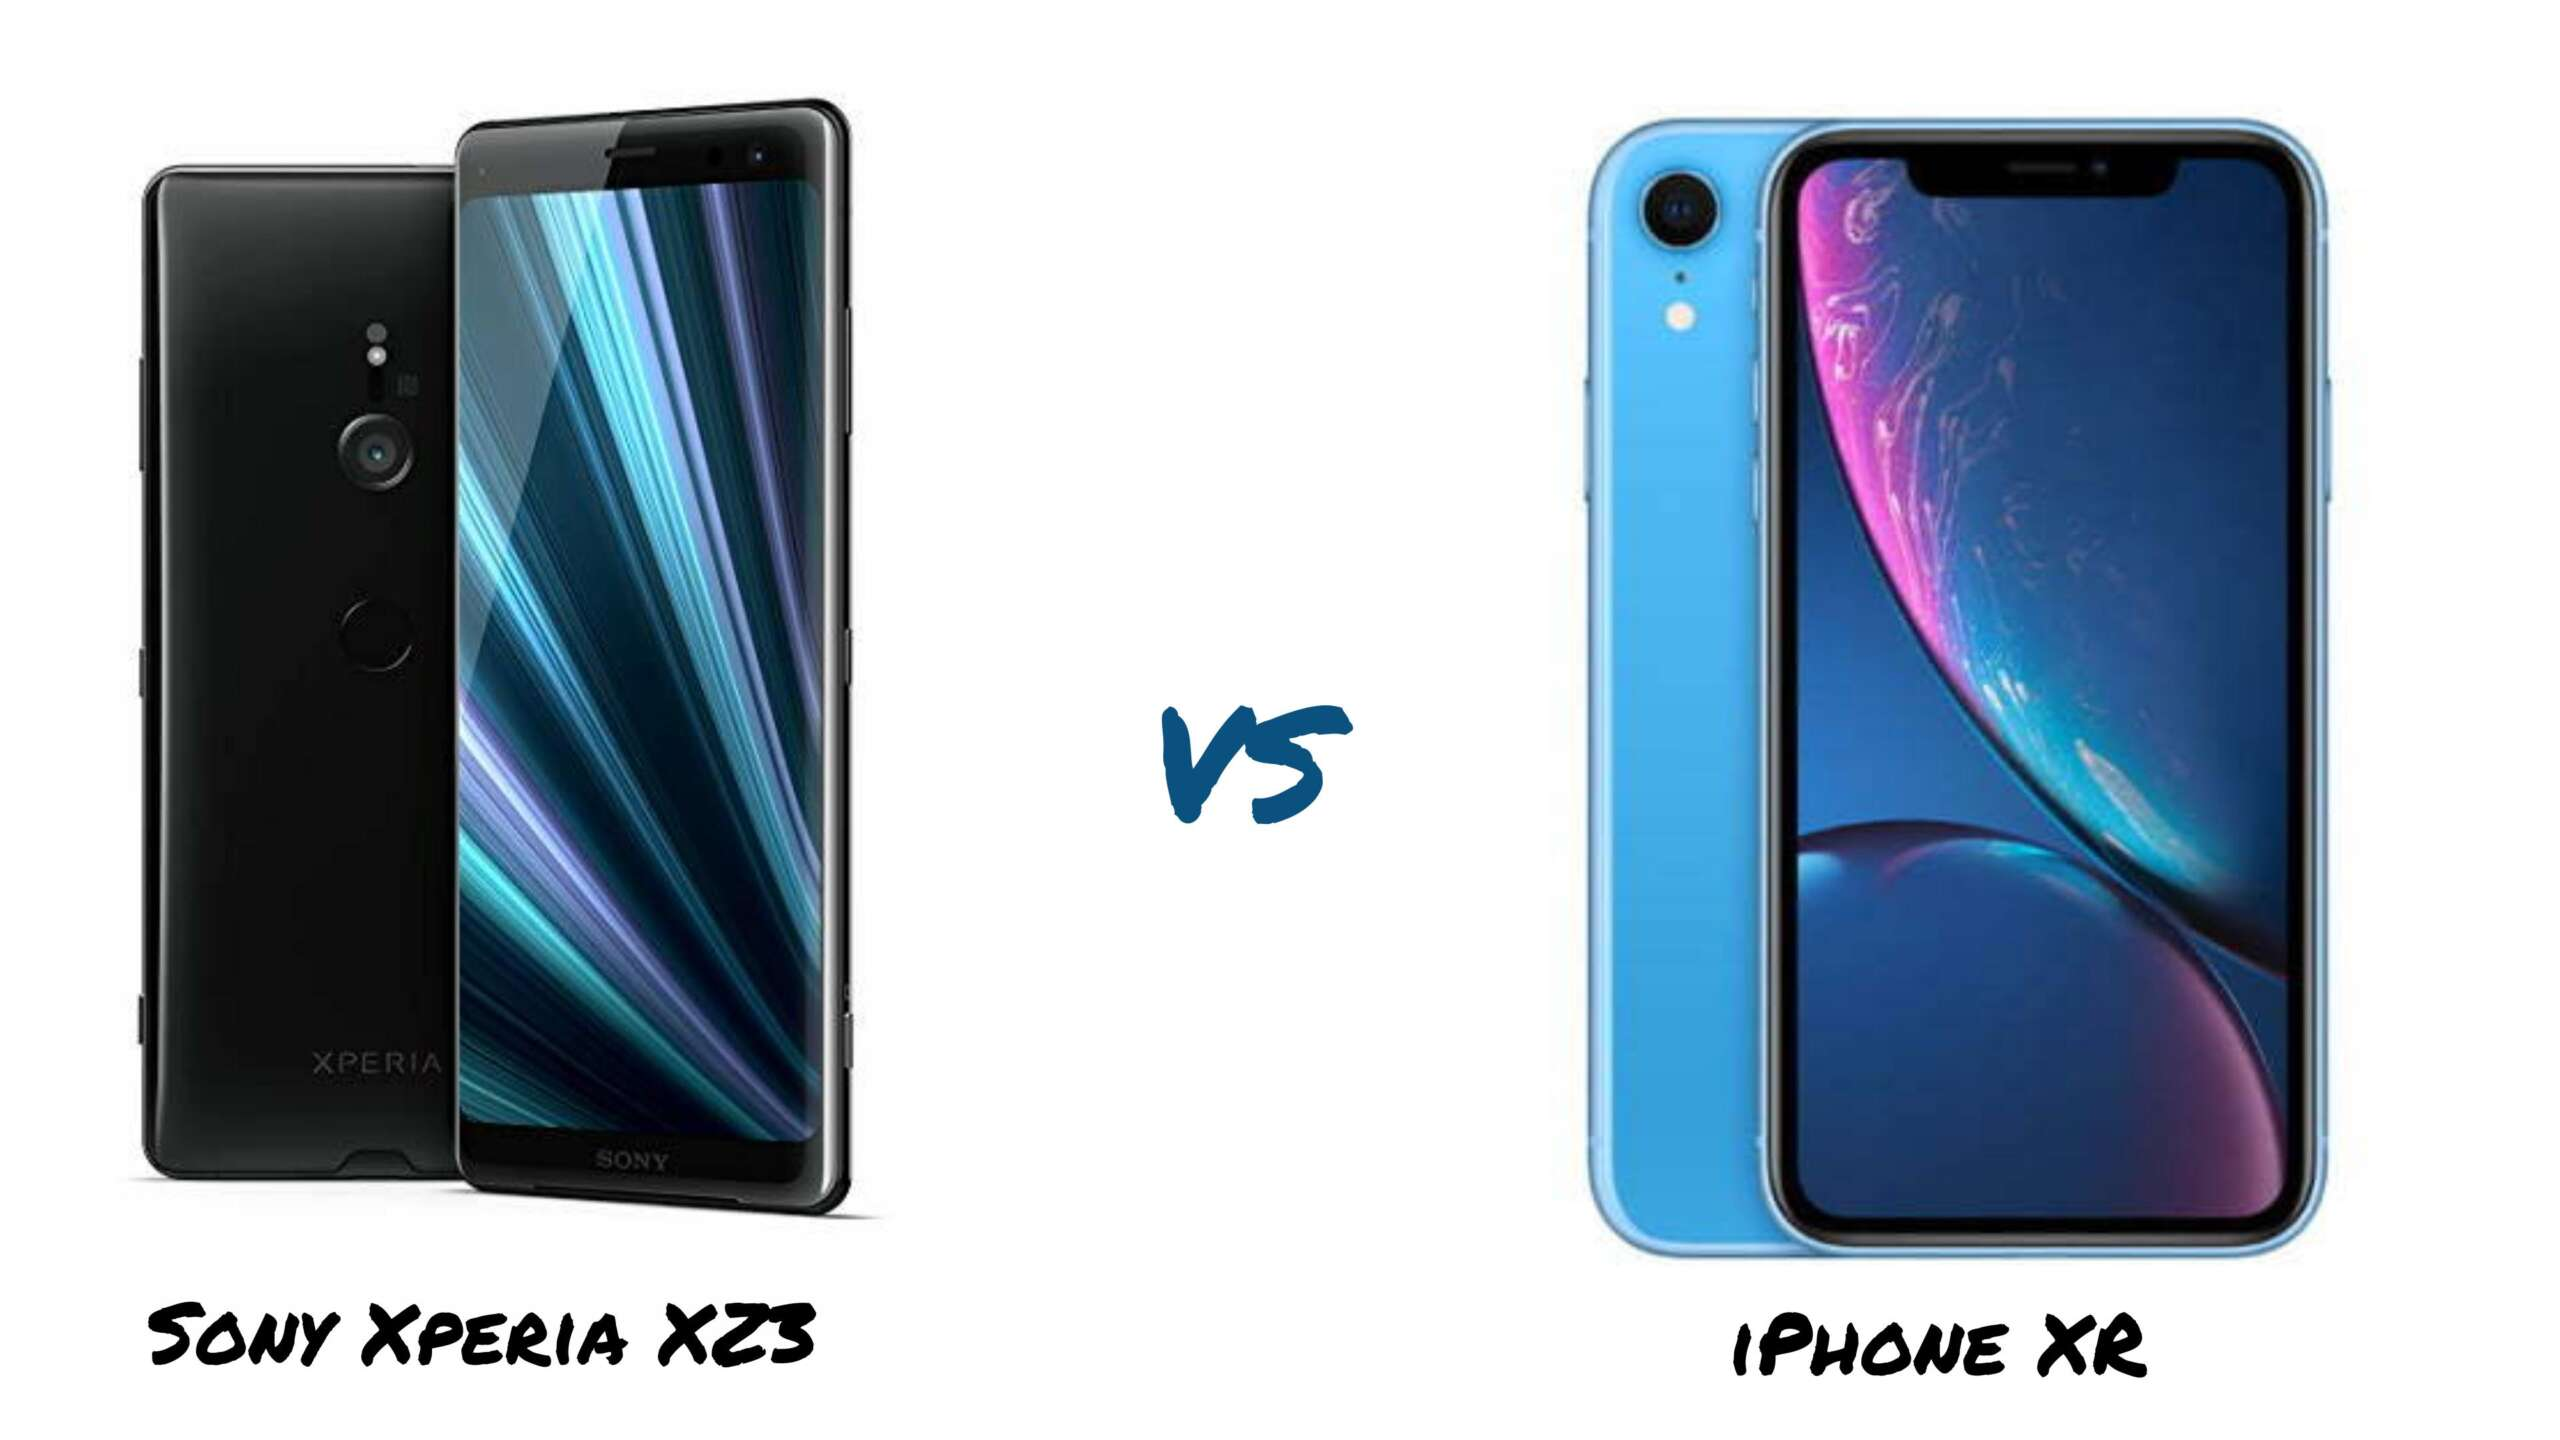 Sony Xperia XZ3 vs iPhone XR